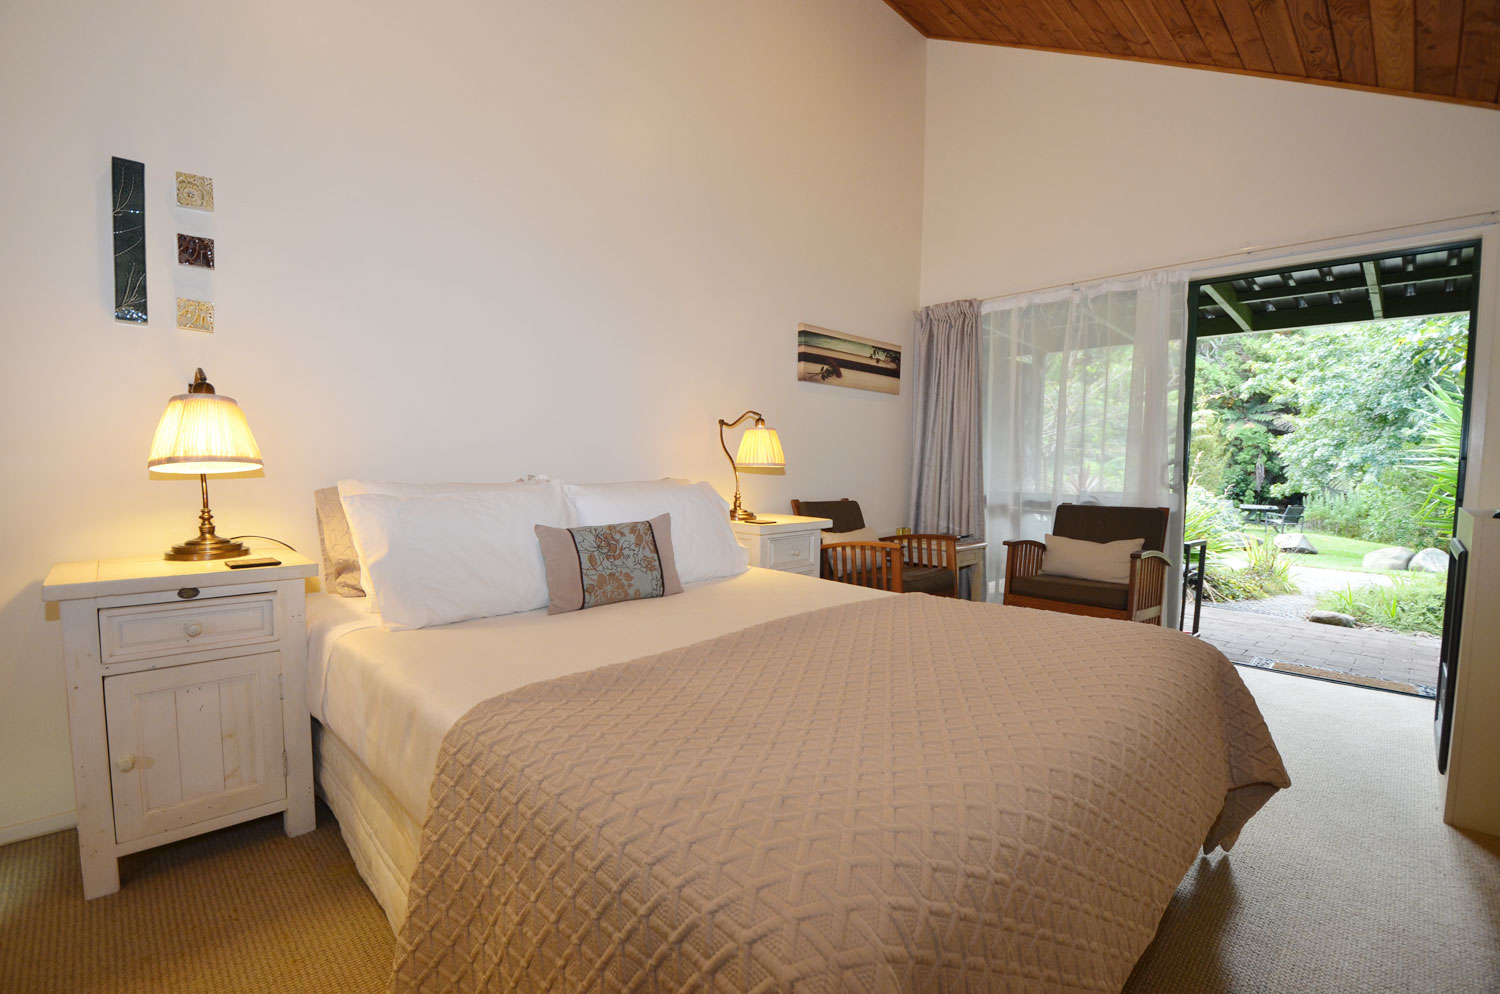 Side view of a double room at the Wairua Lodge